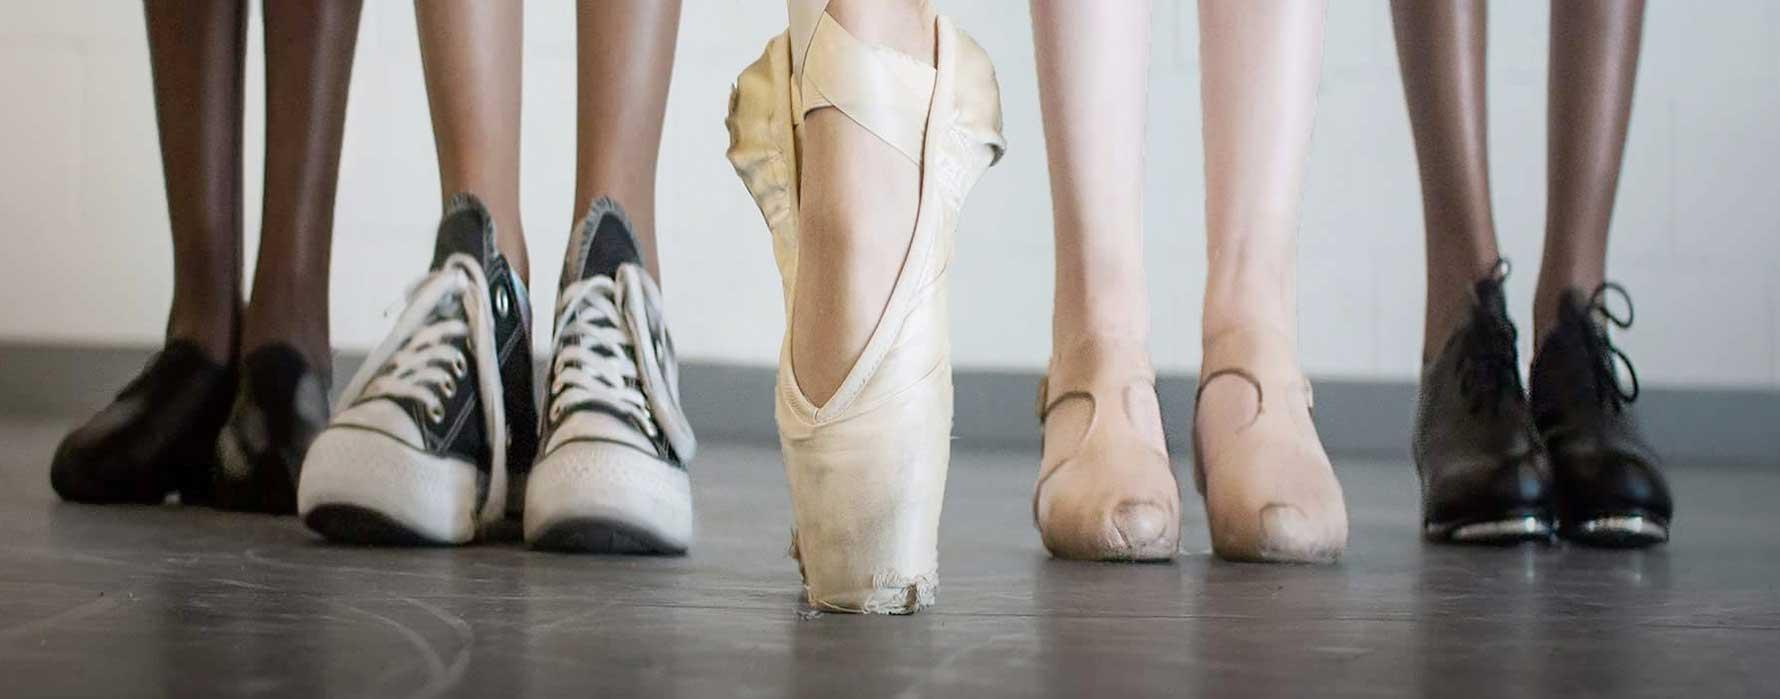 Group of feet in dance shoes